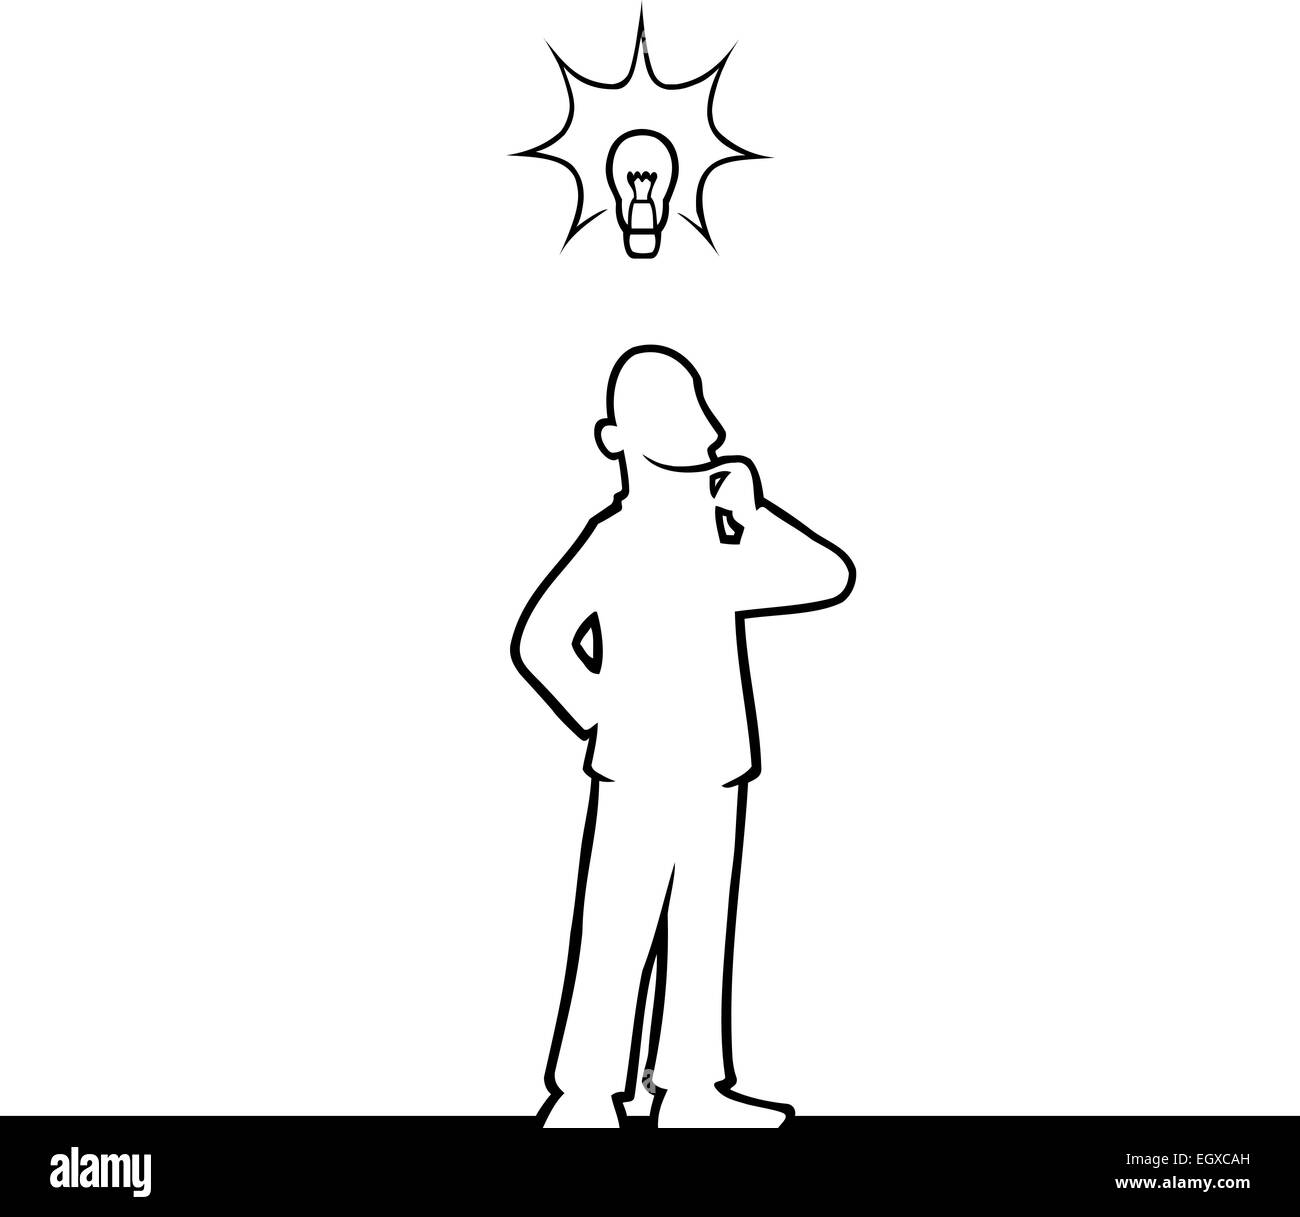 Black line art illustration of a man with a lightbulb above his head. - Stock Vector